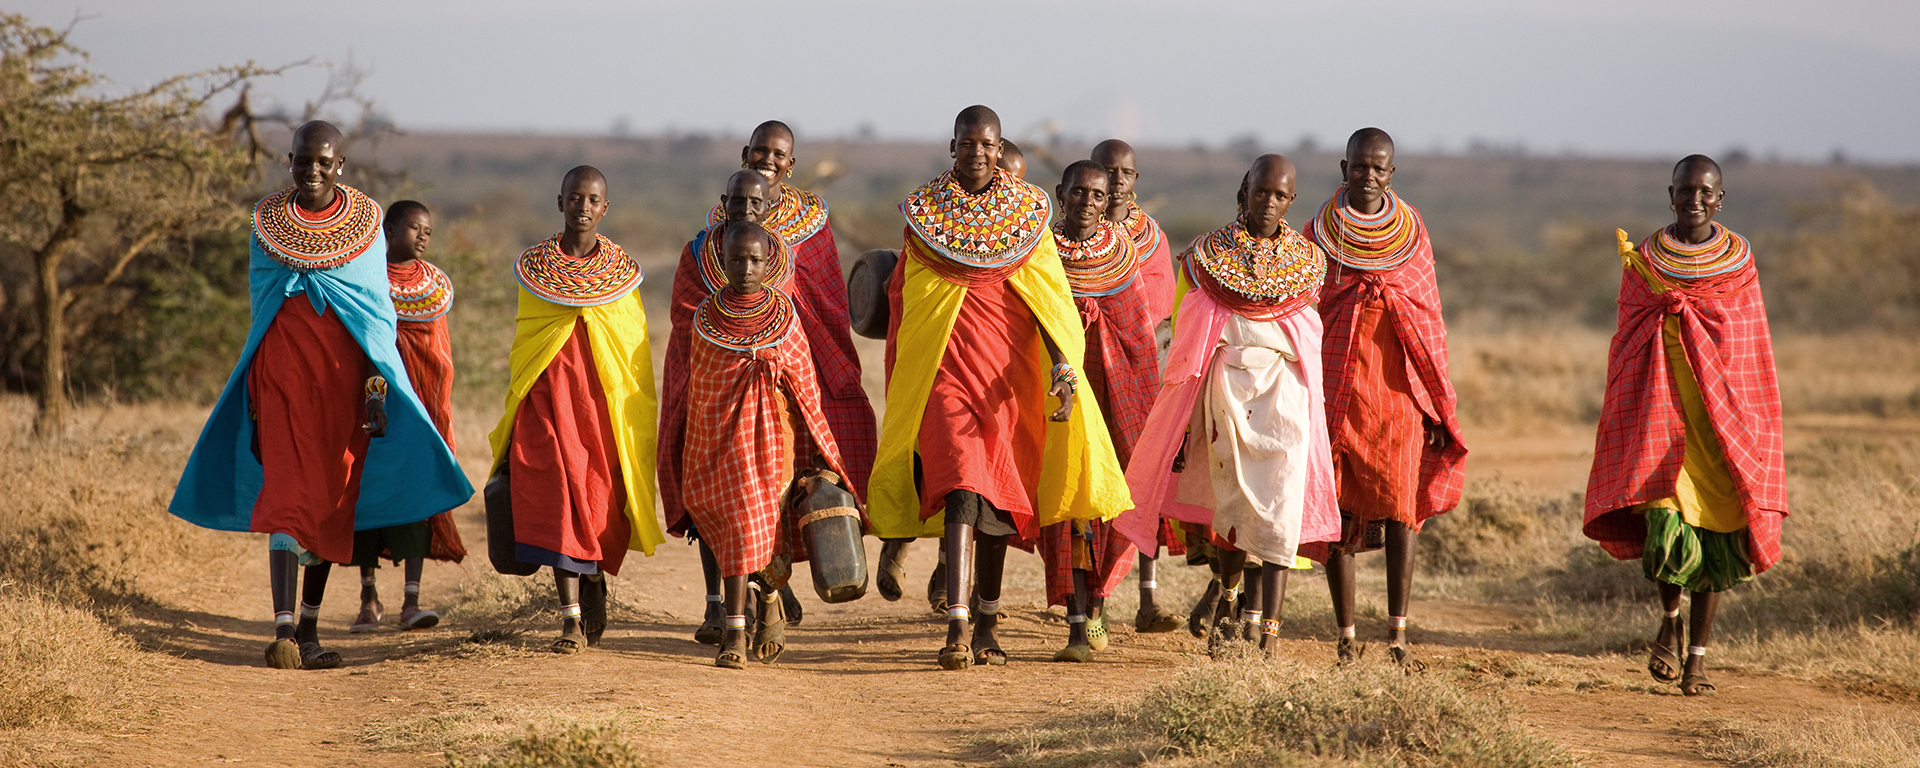 Samburu women set off to collect fresh water at Ol Malo. Laikipia and Lewa are full of successful community projects that aim to benefit as many parties as possible.